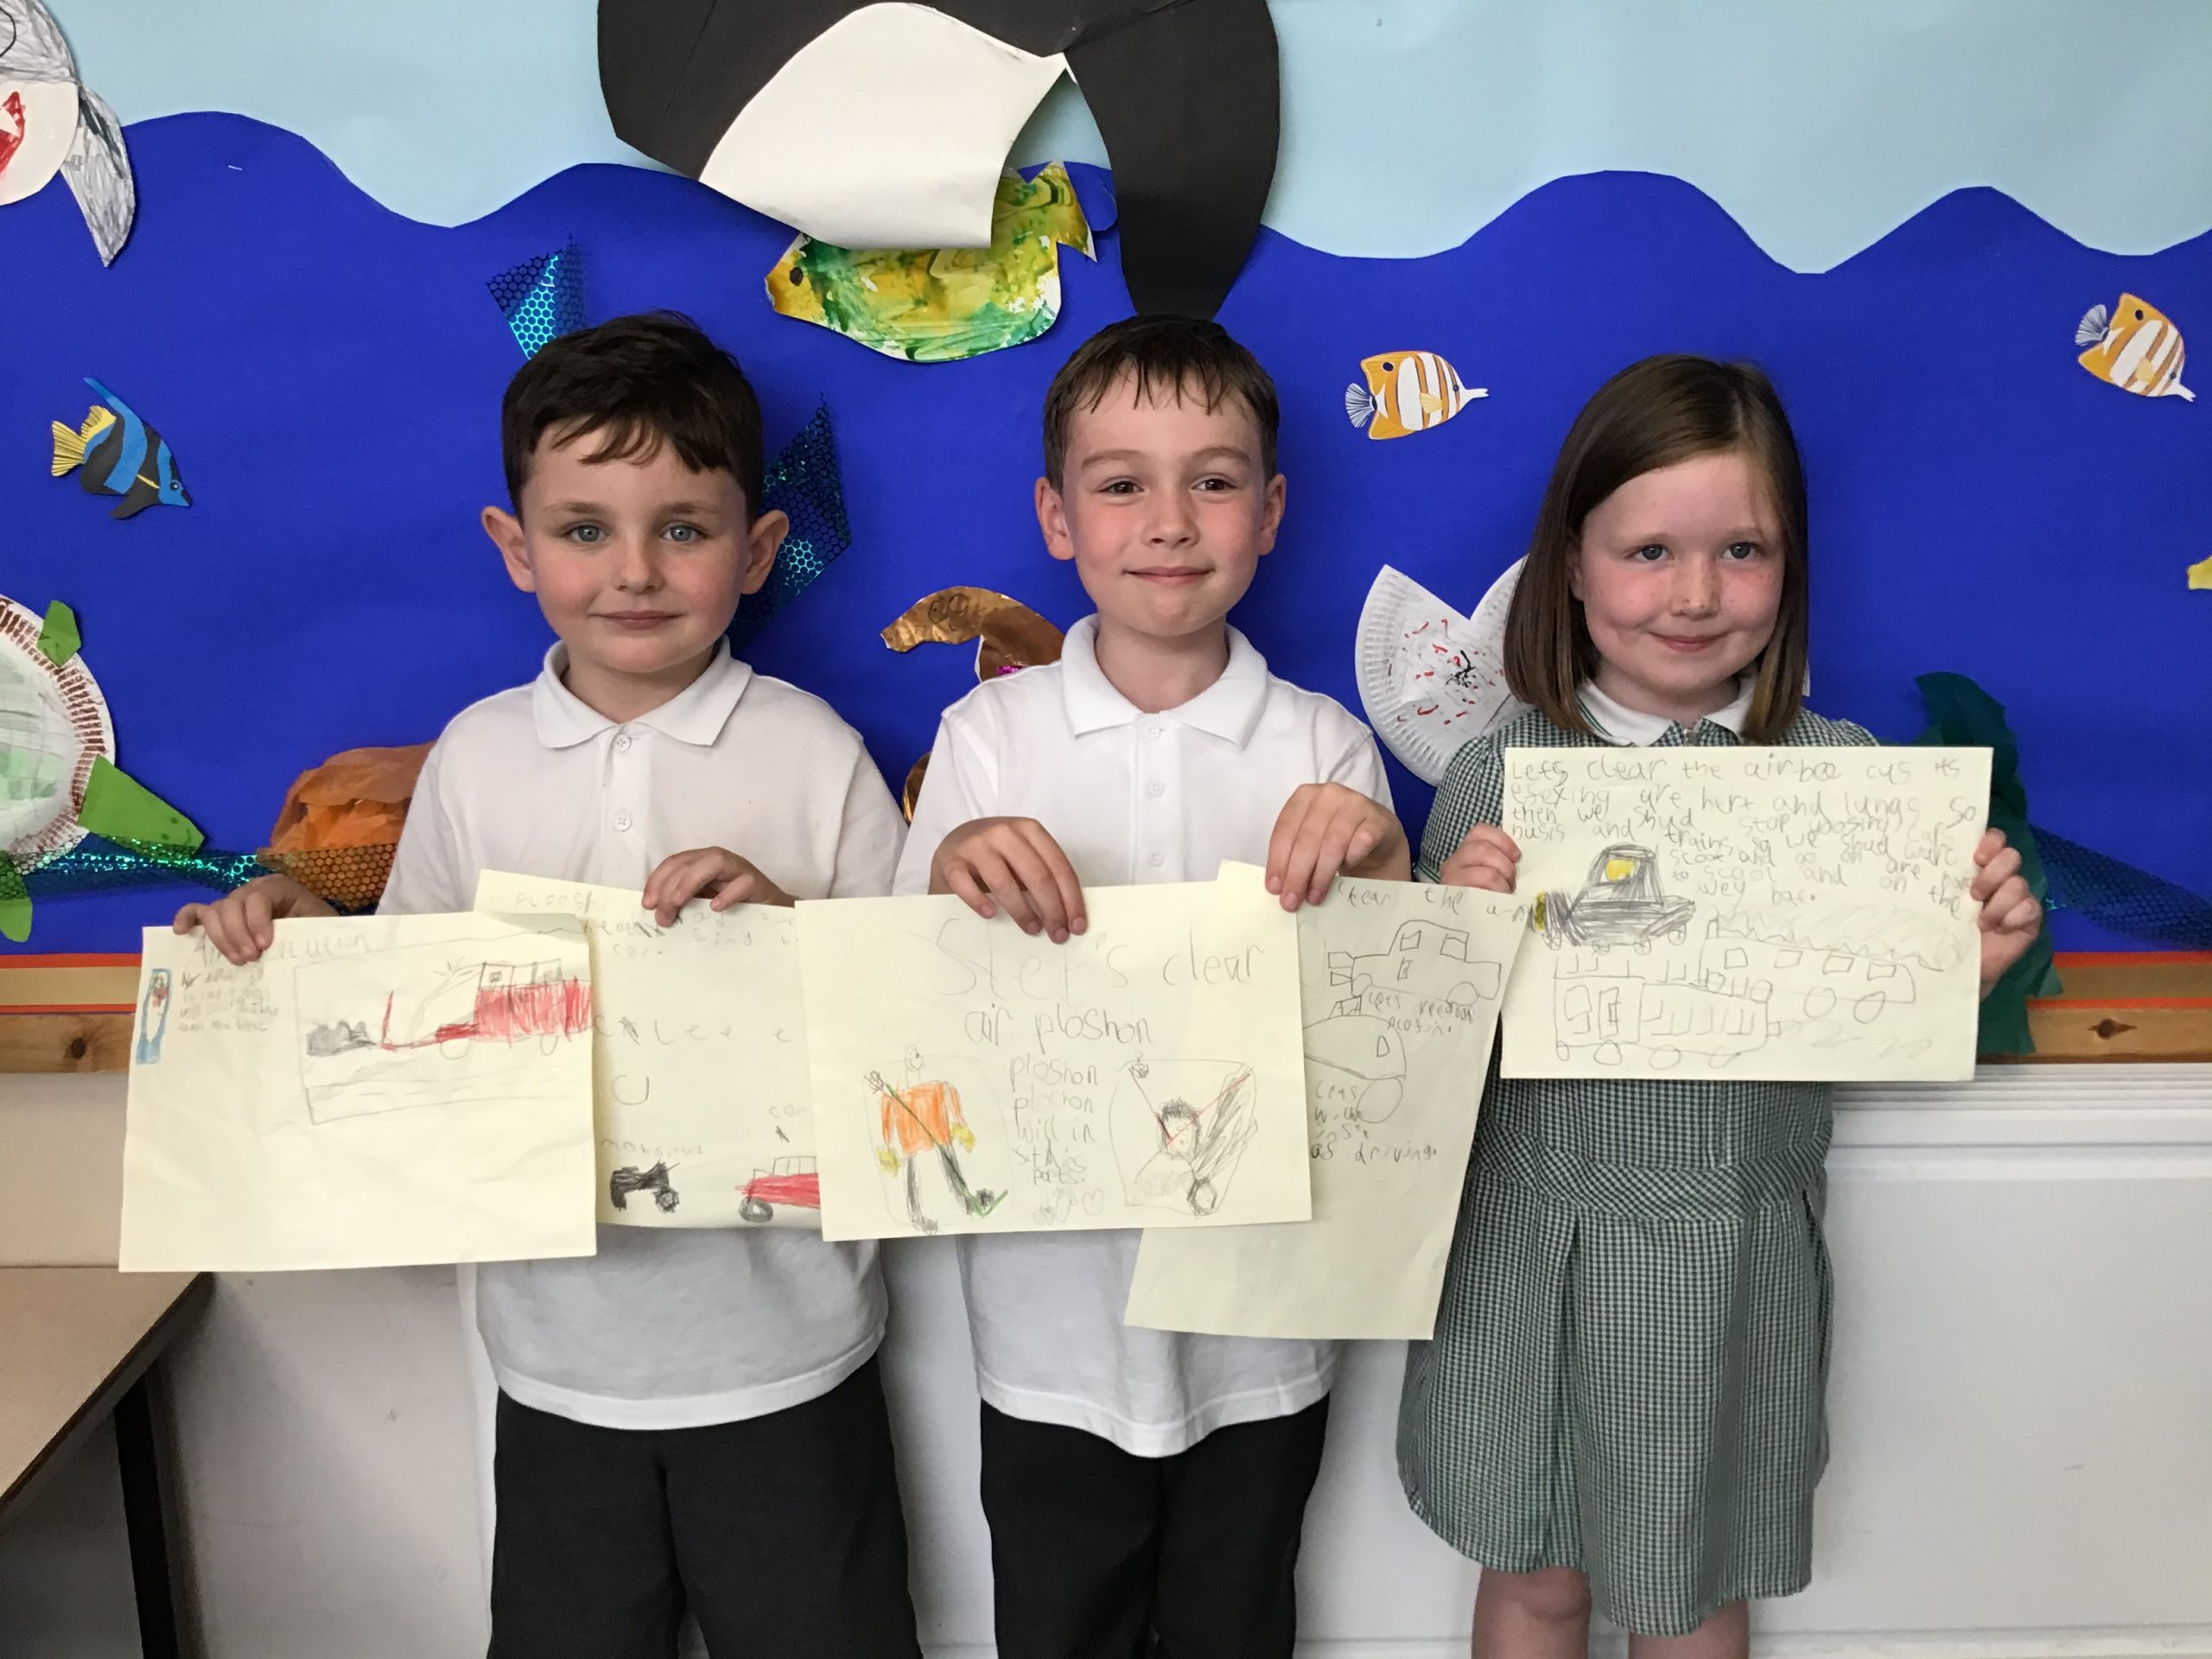 Pupils from St Pauls adn St Timothys School holding clean air posters